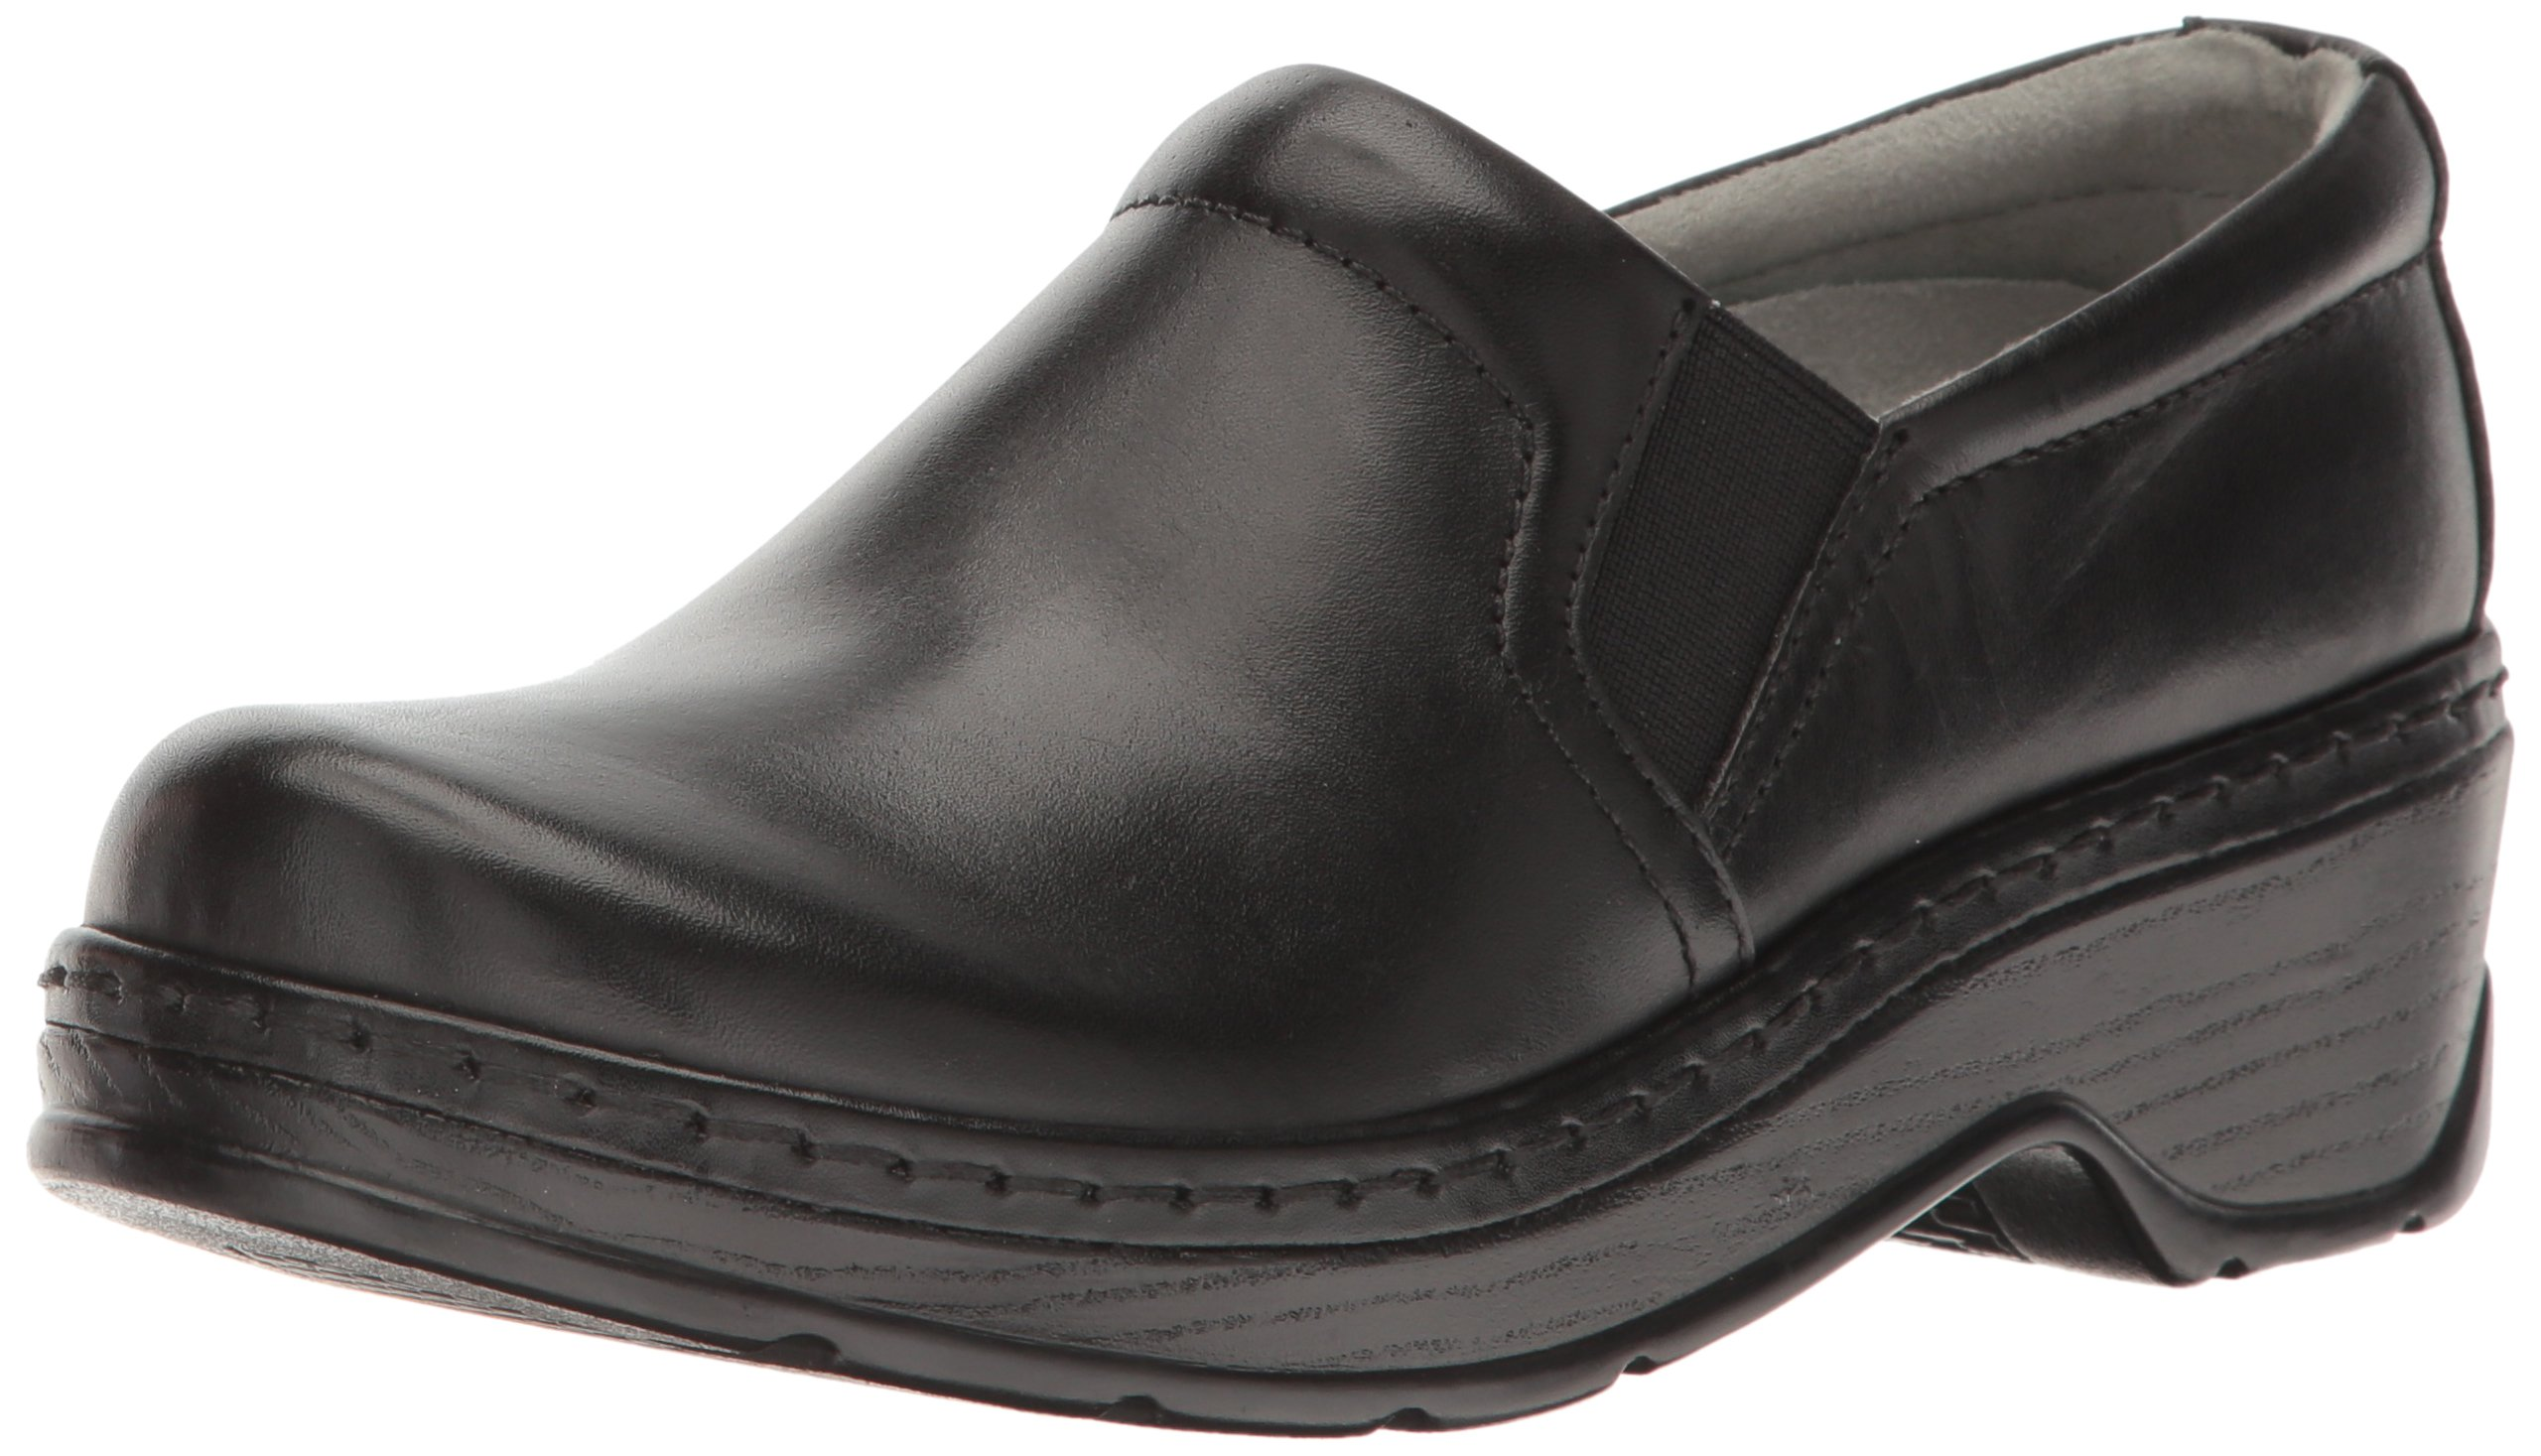 Klogs USA Women's Naples Clog,Black Smooth,10 M US